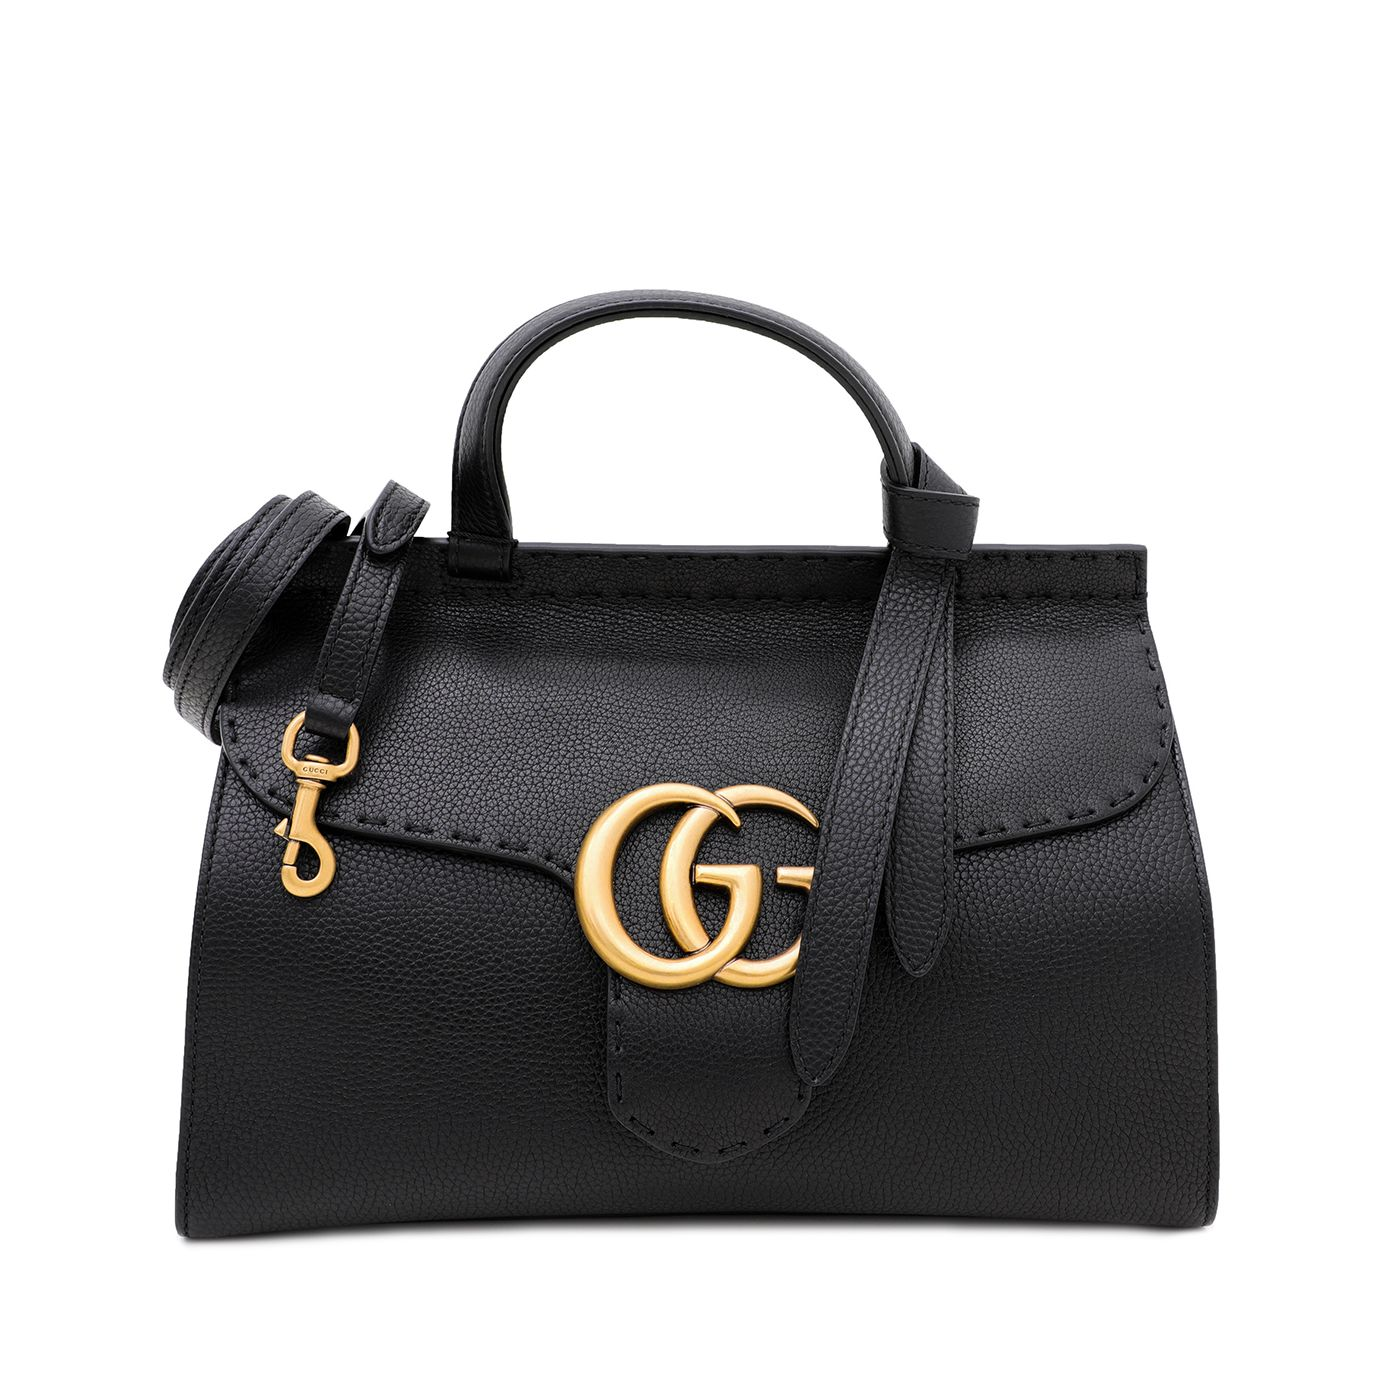 Gucci Black GG Marmont Top Handle Bag Small